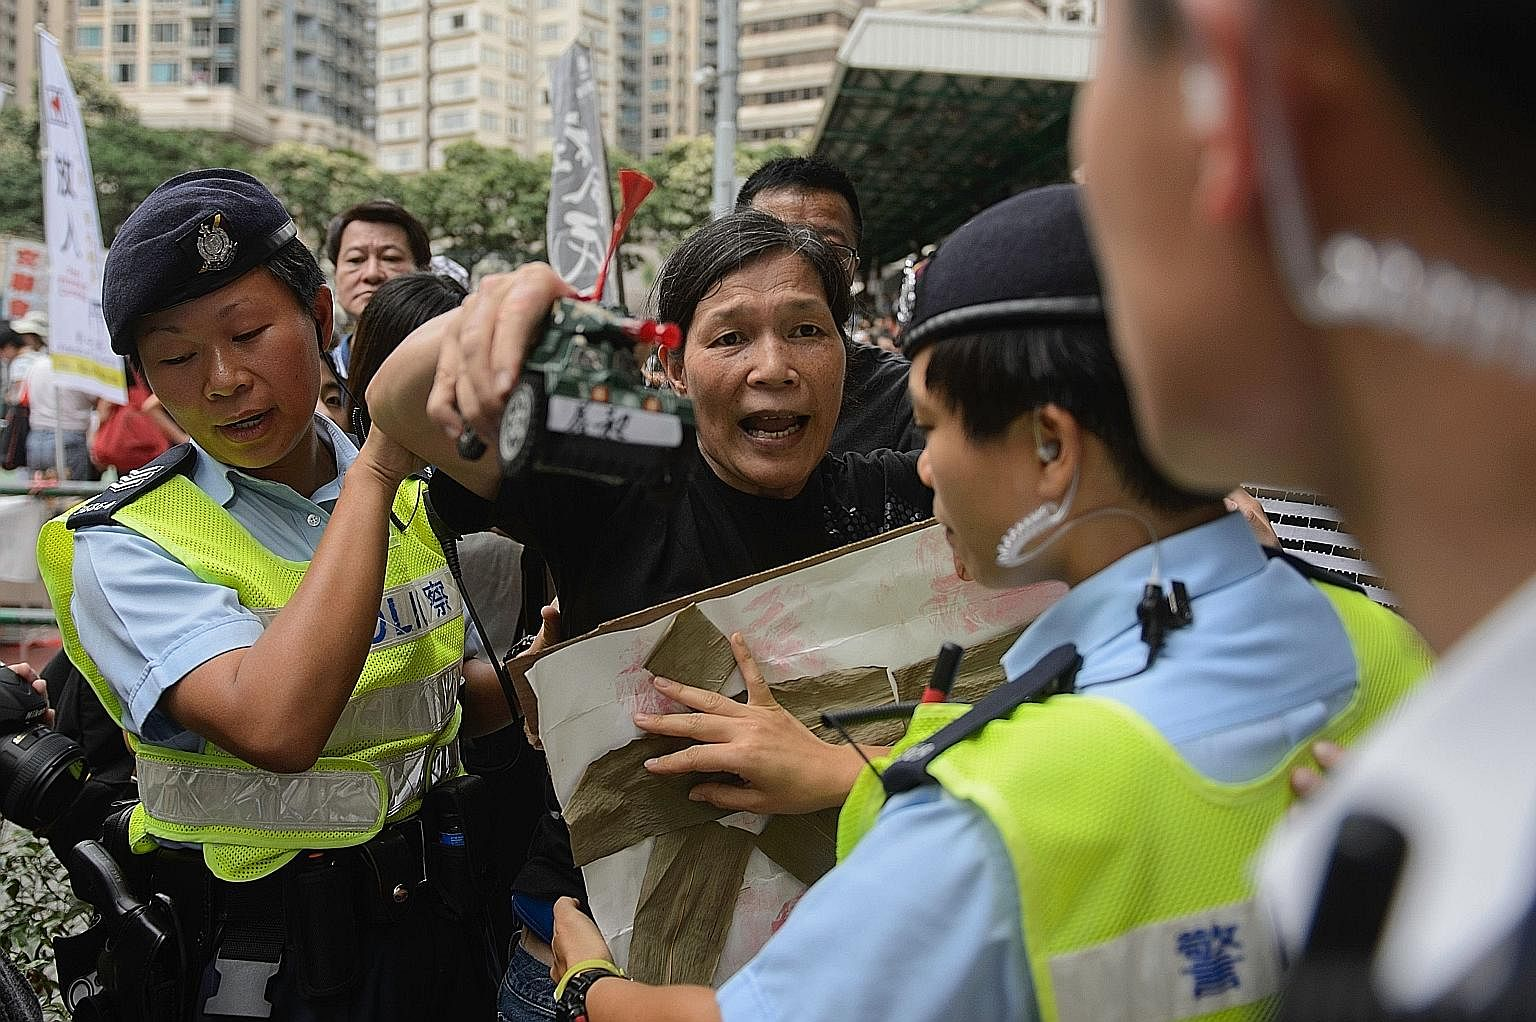 Police holding back a pro-democracy activist, with a toy tank in her hand, after she taunted pro-China demonstrators in Hong Kong on Sunday. The pro-China demonstrators had gathered to counter-protest against a pro-democracy rally ahead of the annive